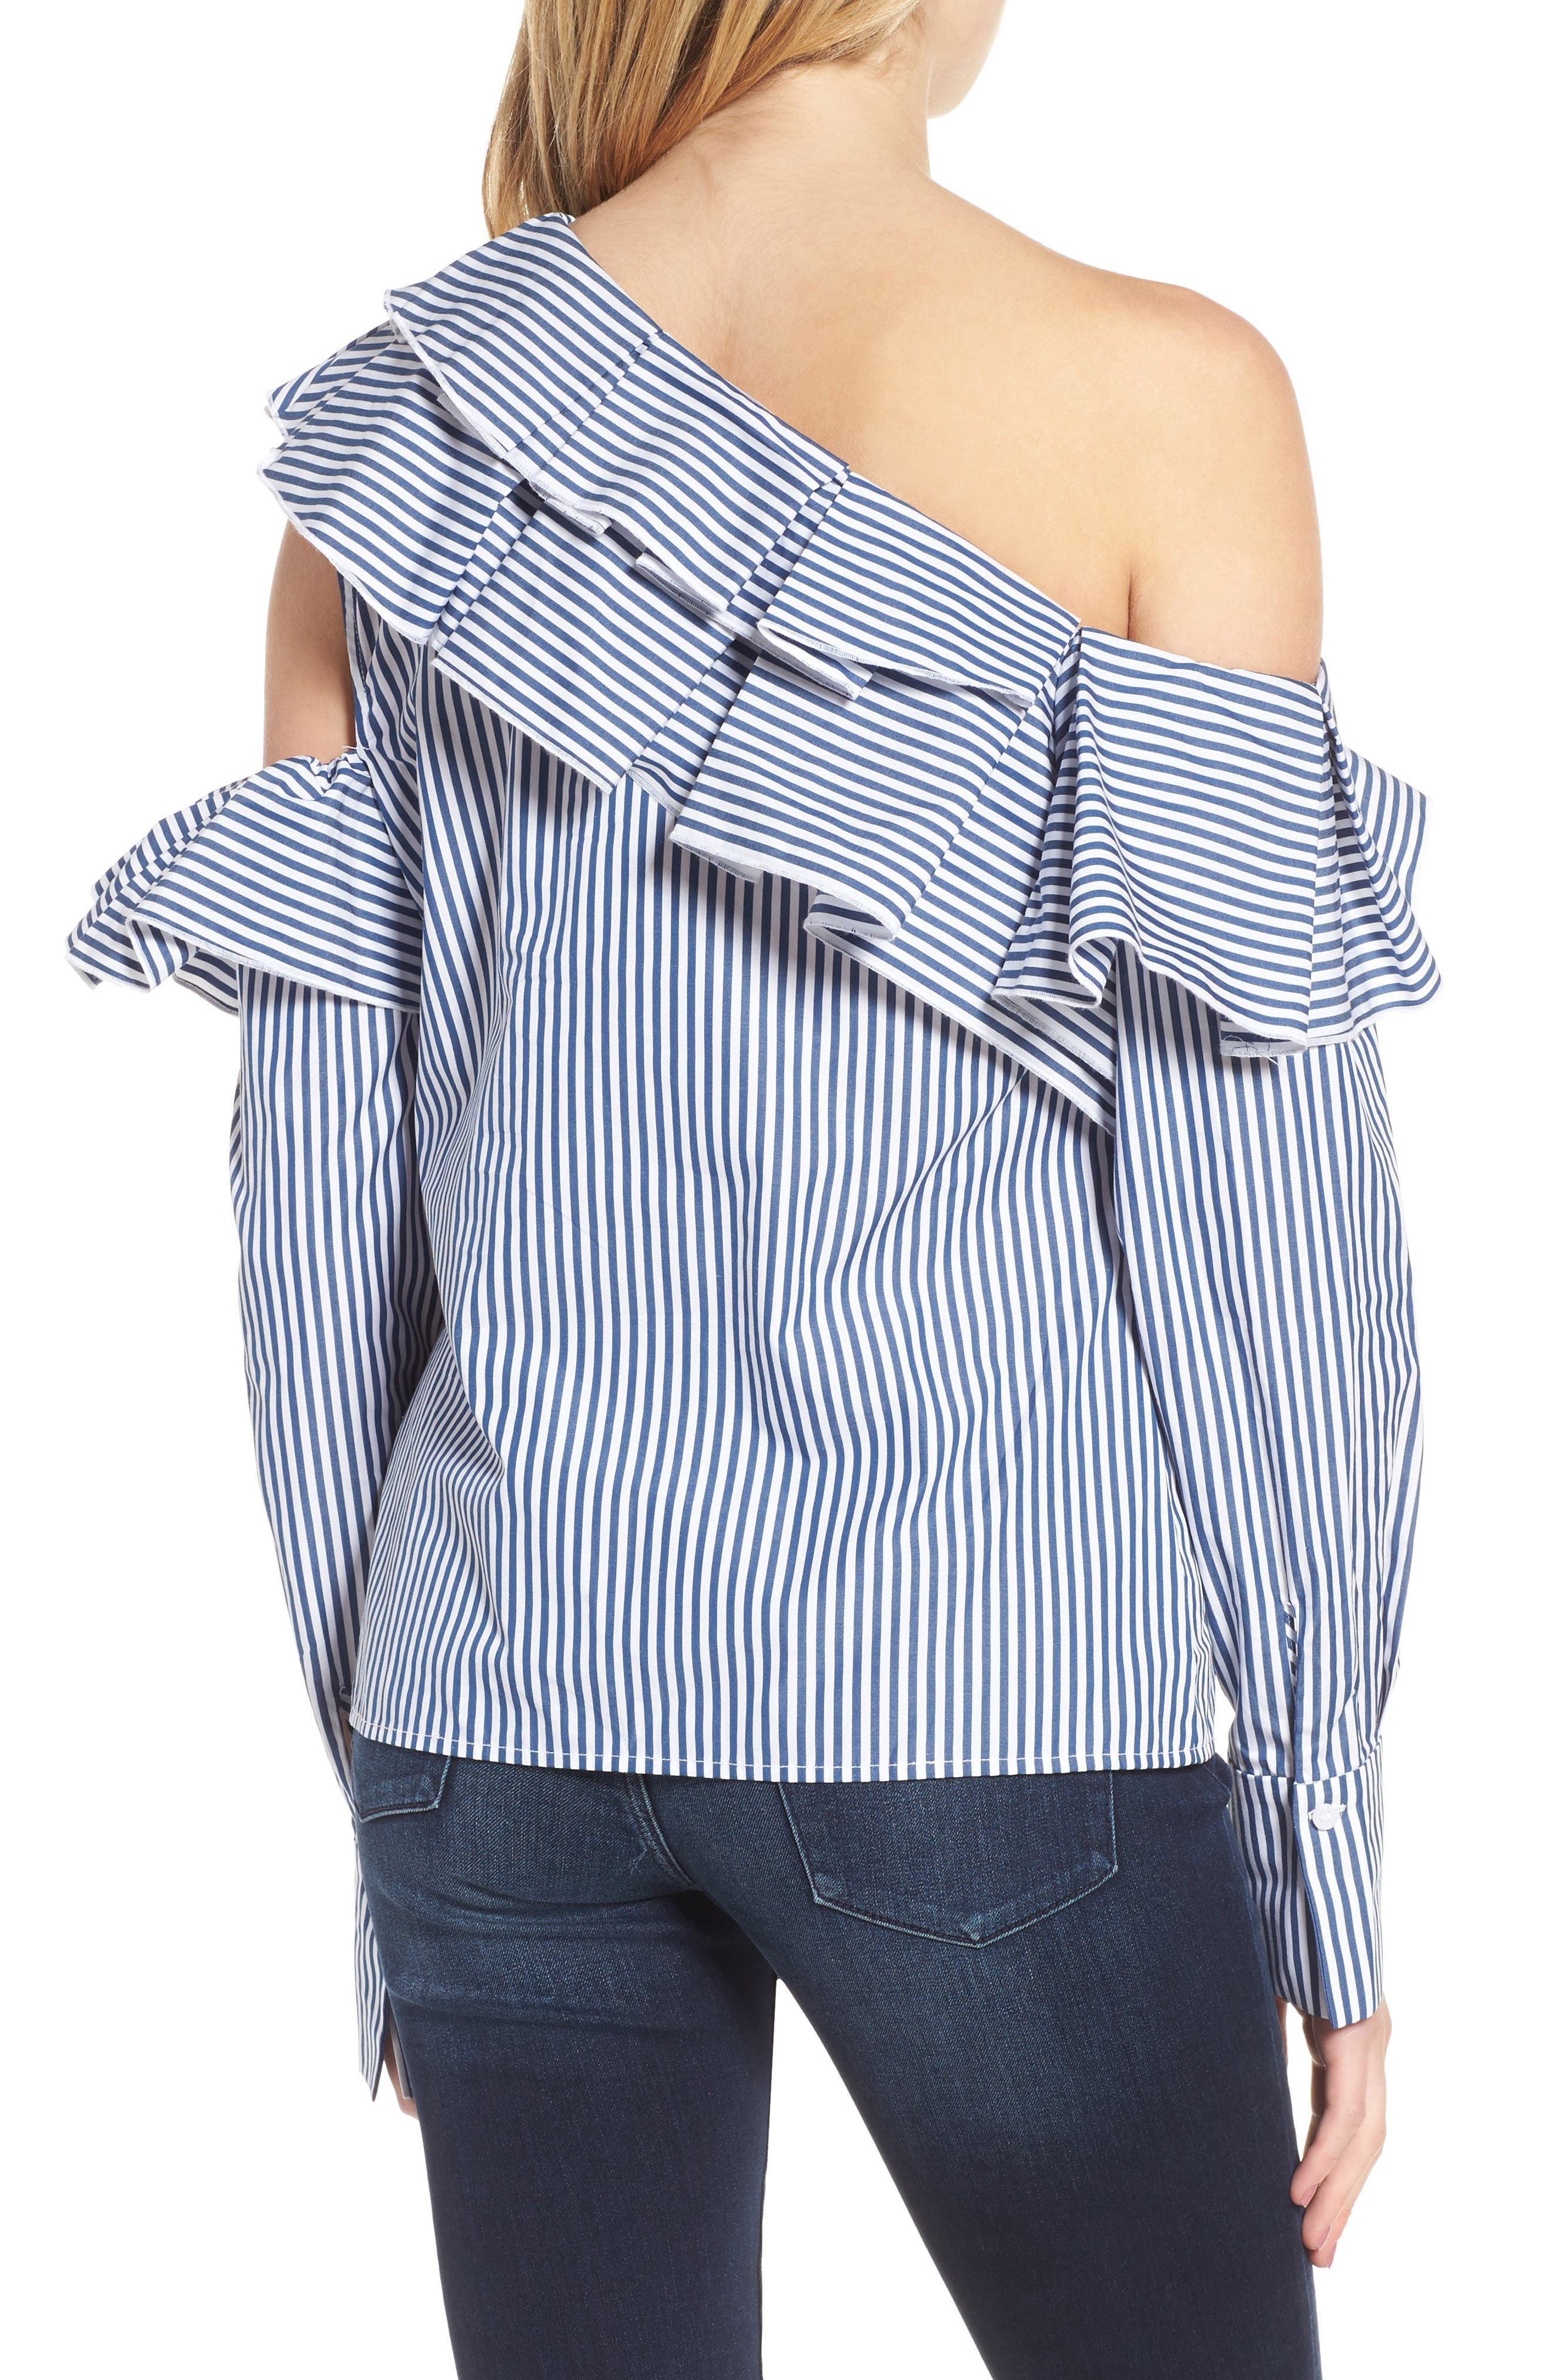 Ruffle One-Shoulder Blouse,                             Alternate thumbnail 2, color,                             410